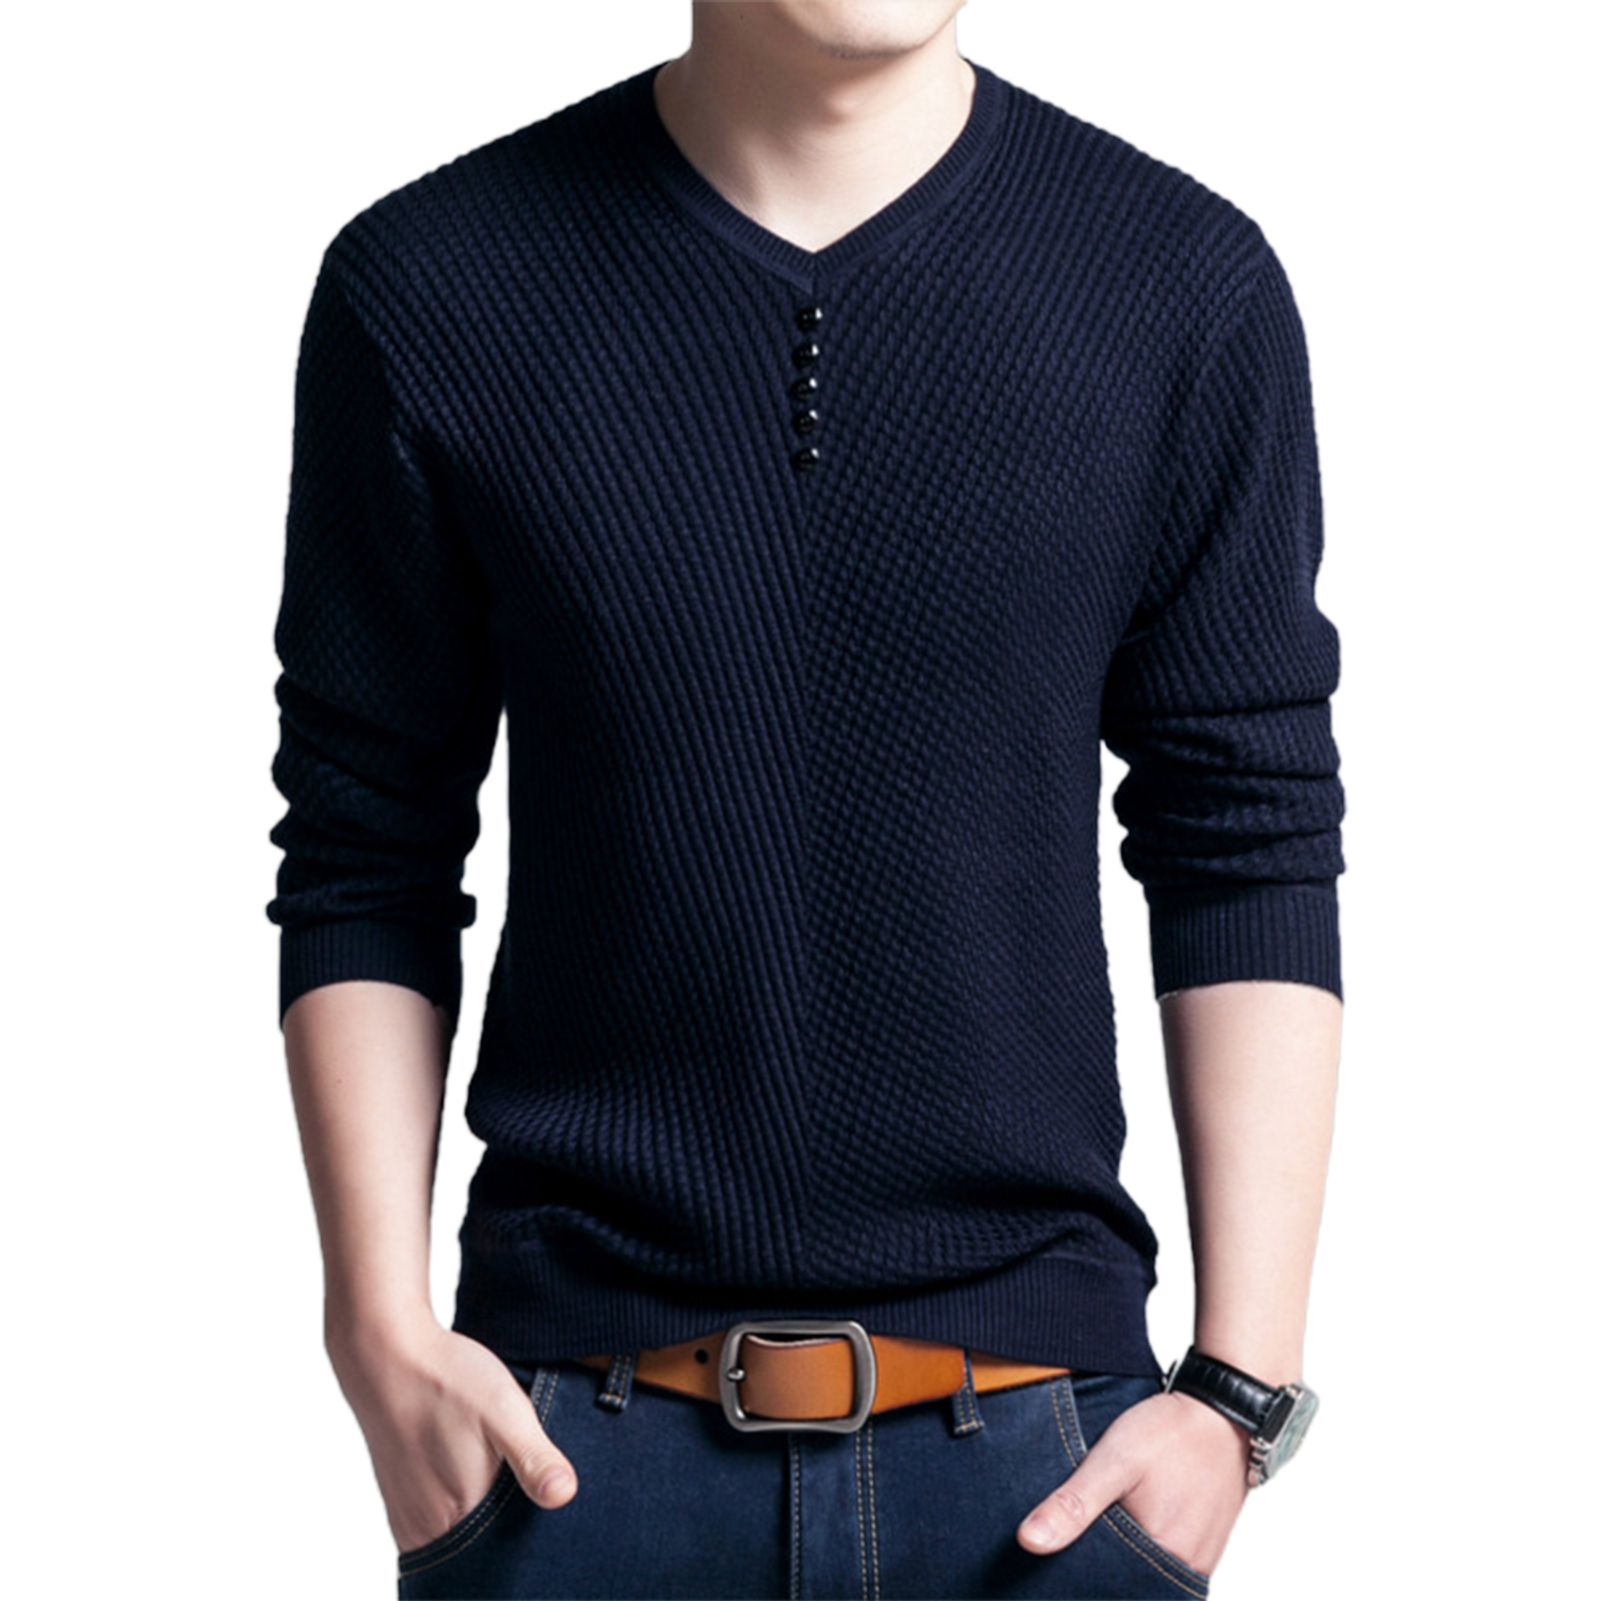 Men Long Sleeve Solid Color Buttons Decor Knitwear Plus Size Bottoming Sweater Men's Knitted Sweaters Pullover Men Knitwear 2020 4